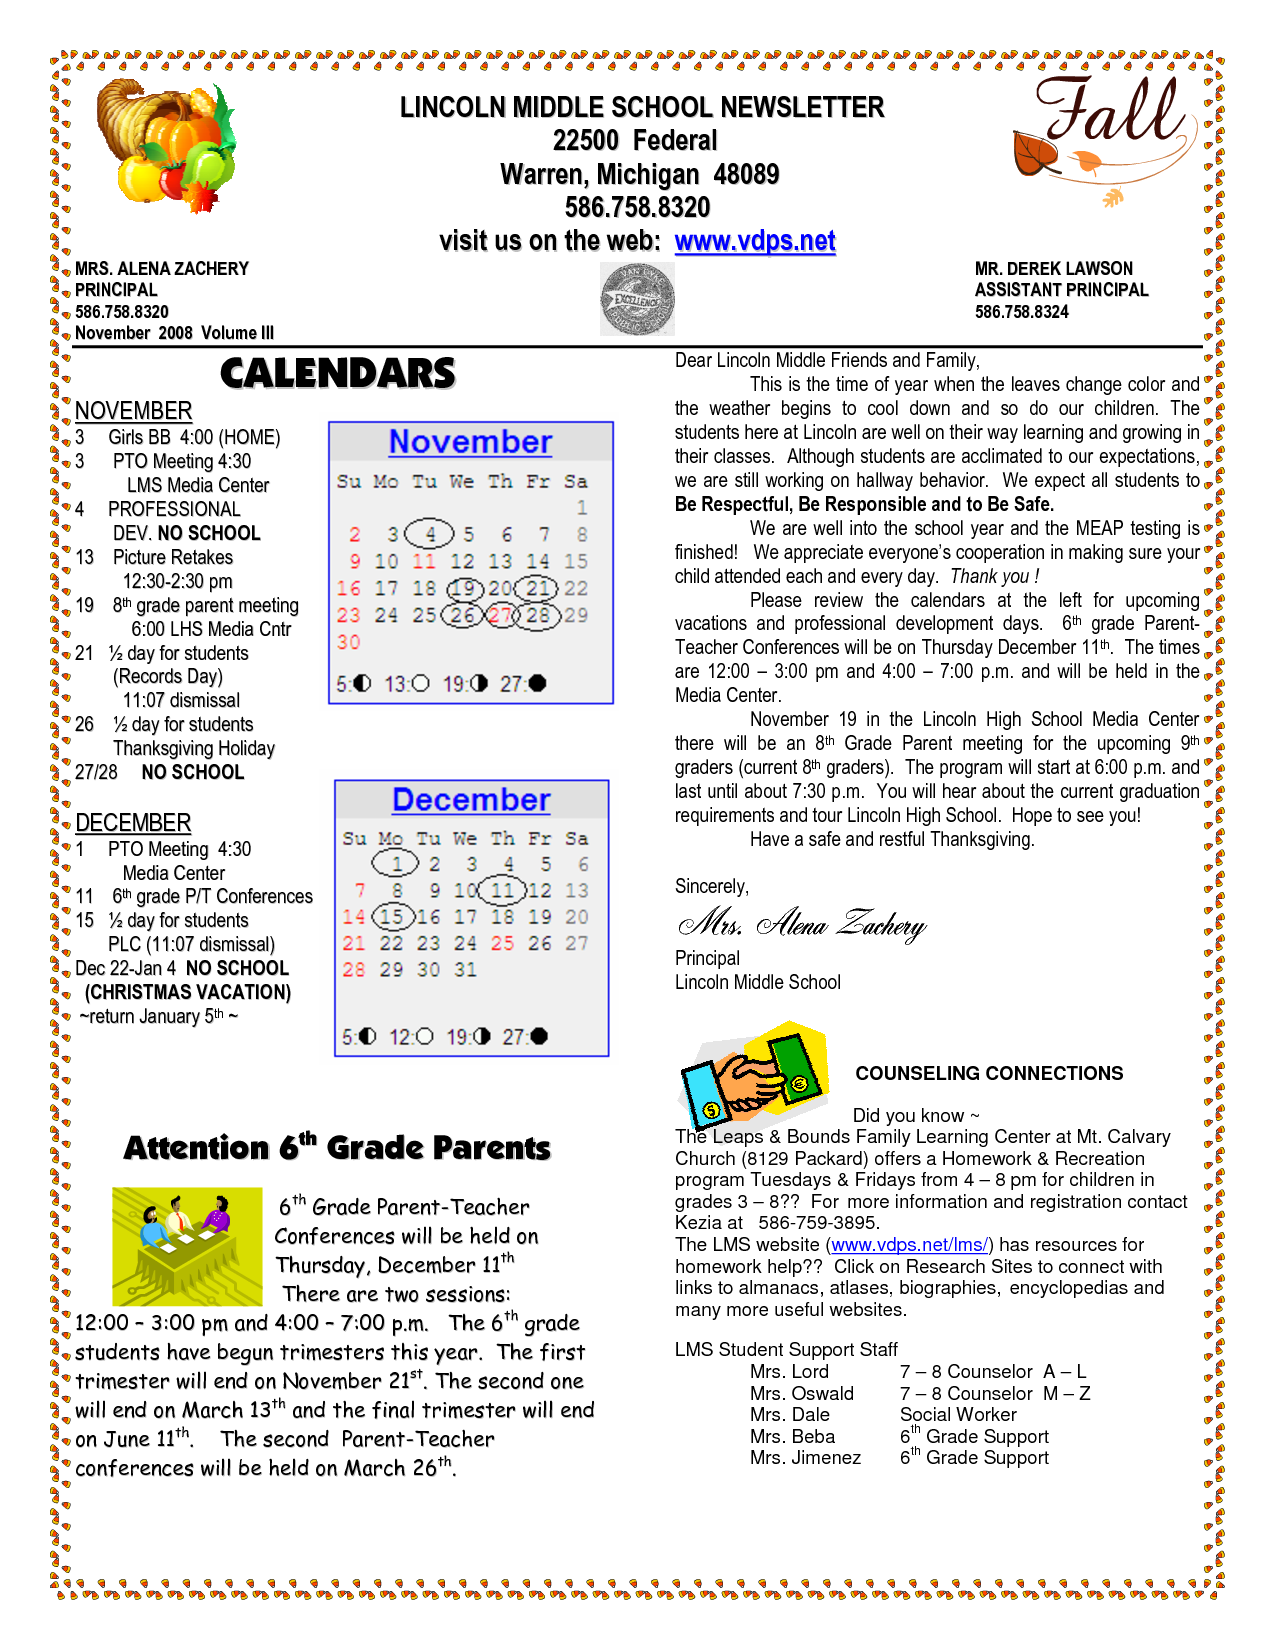 school newsletter templates lincoln middle school newsletter federal warren michigan visit us